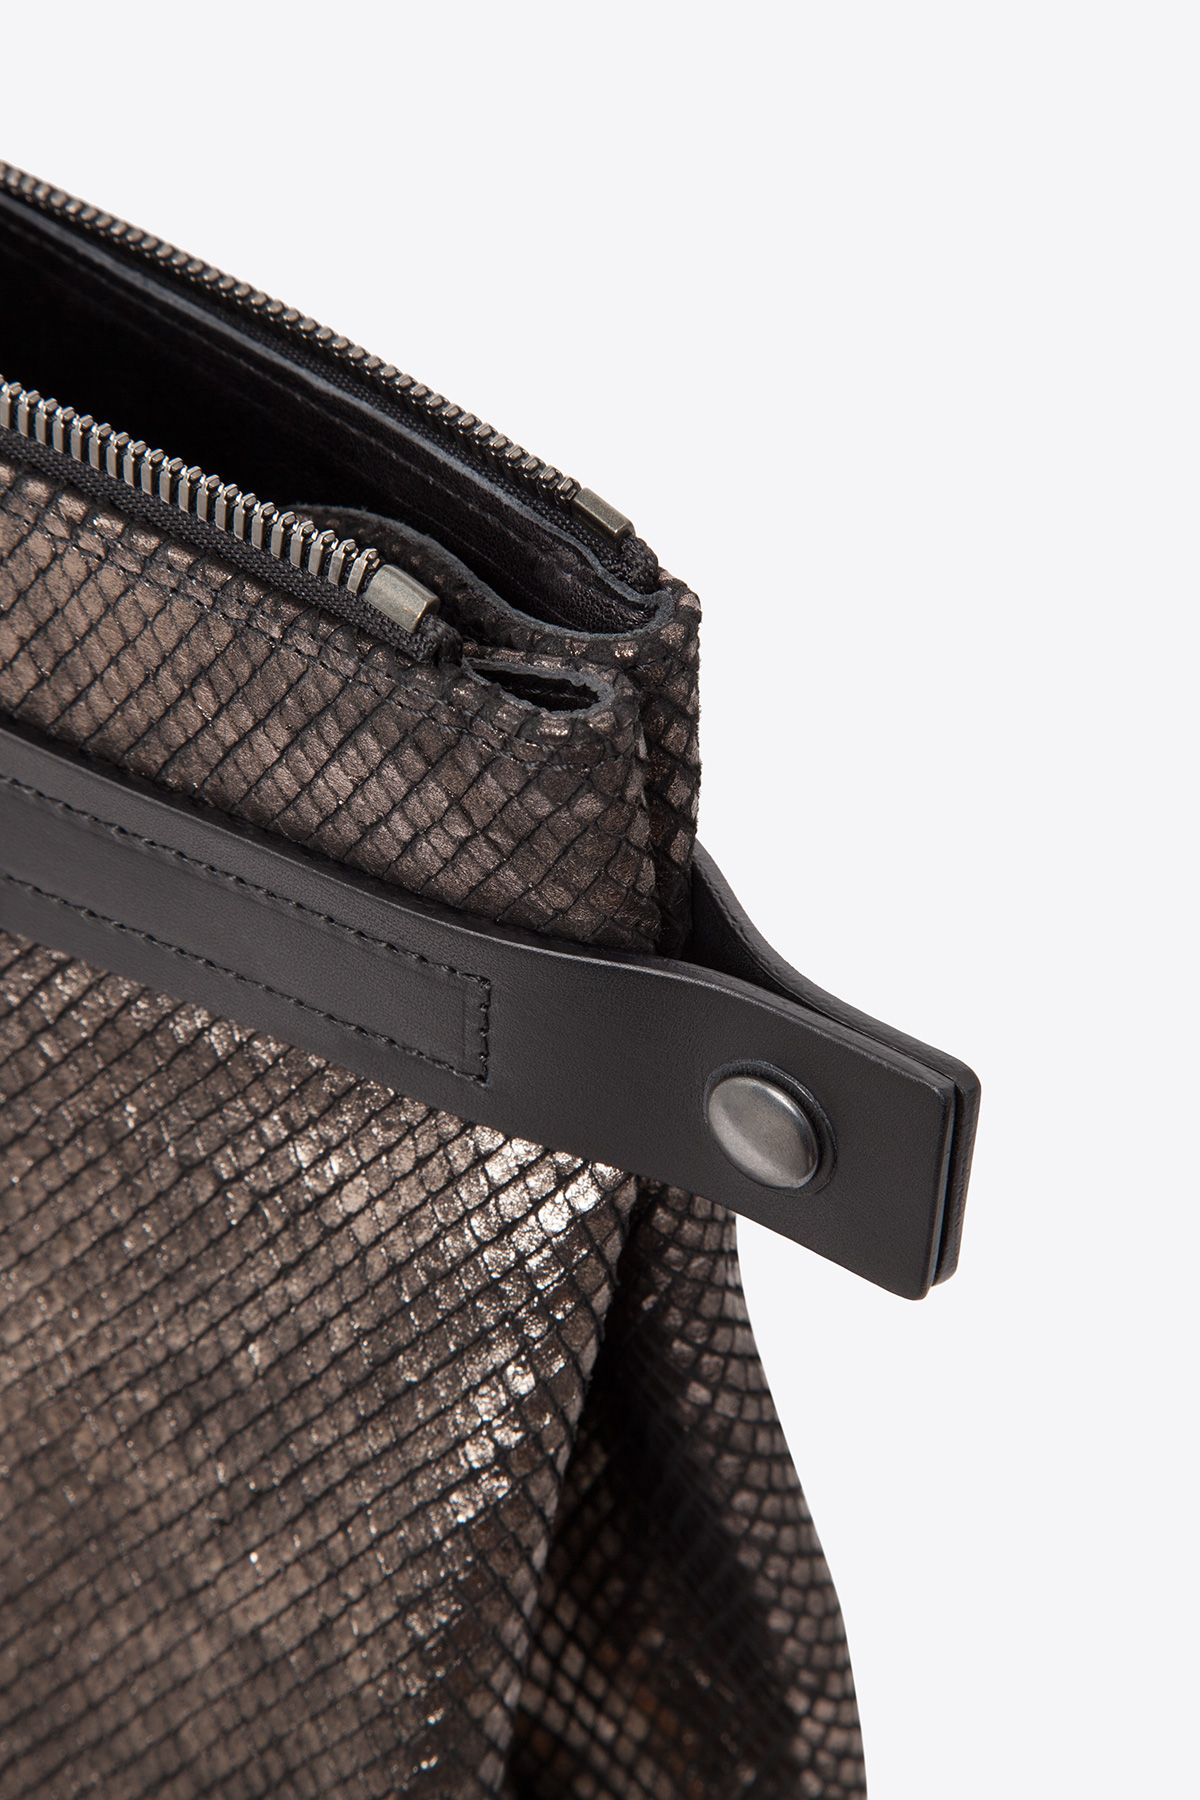 dclr007s-tote-a24-backsnakebronze-detail